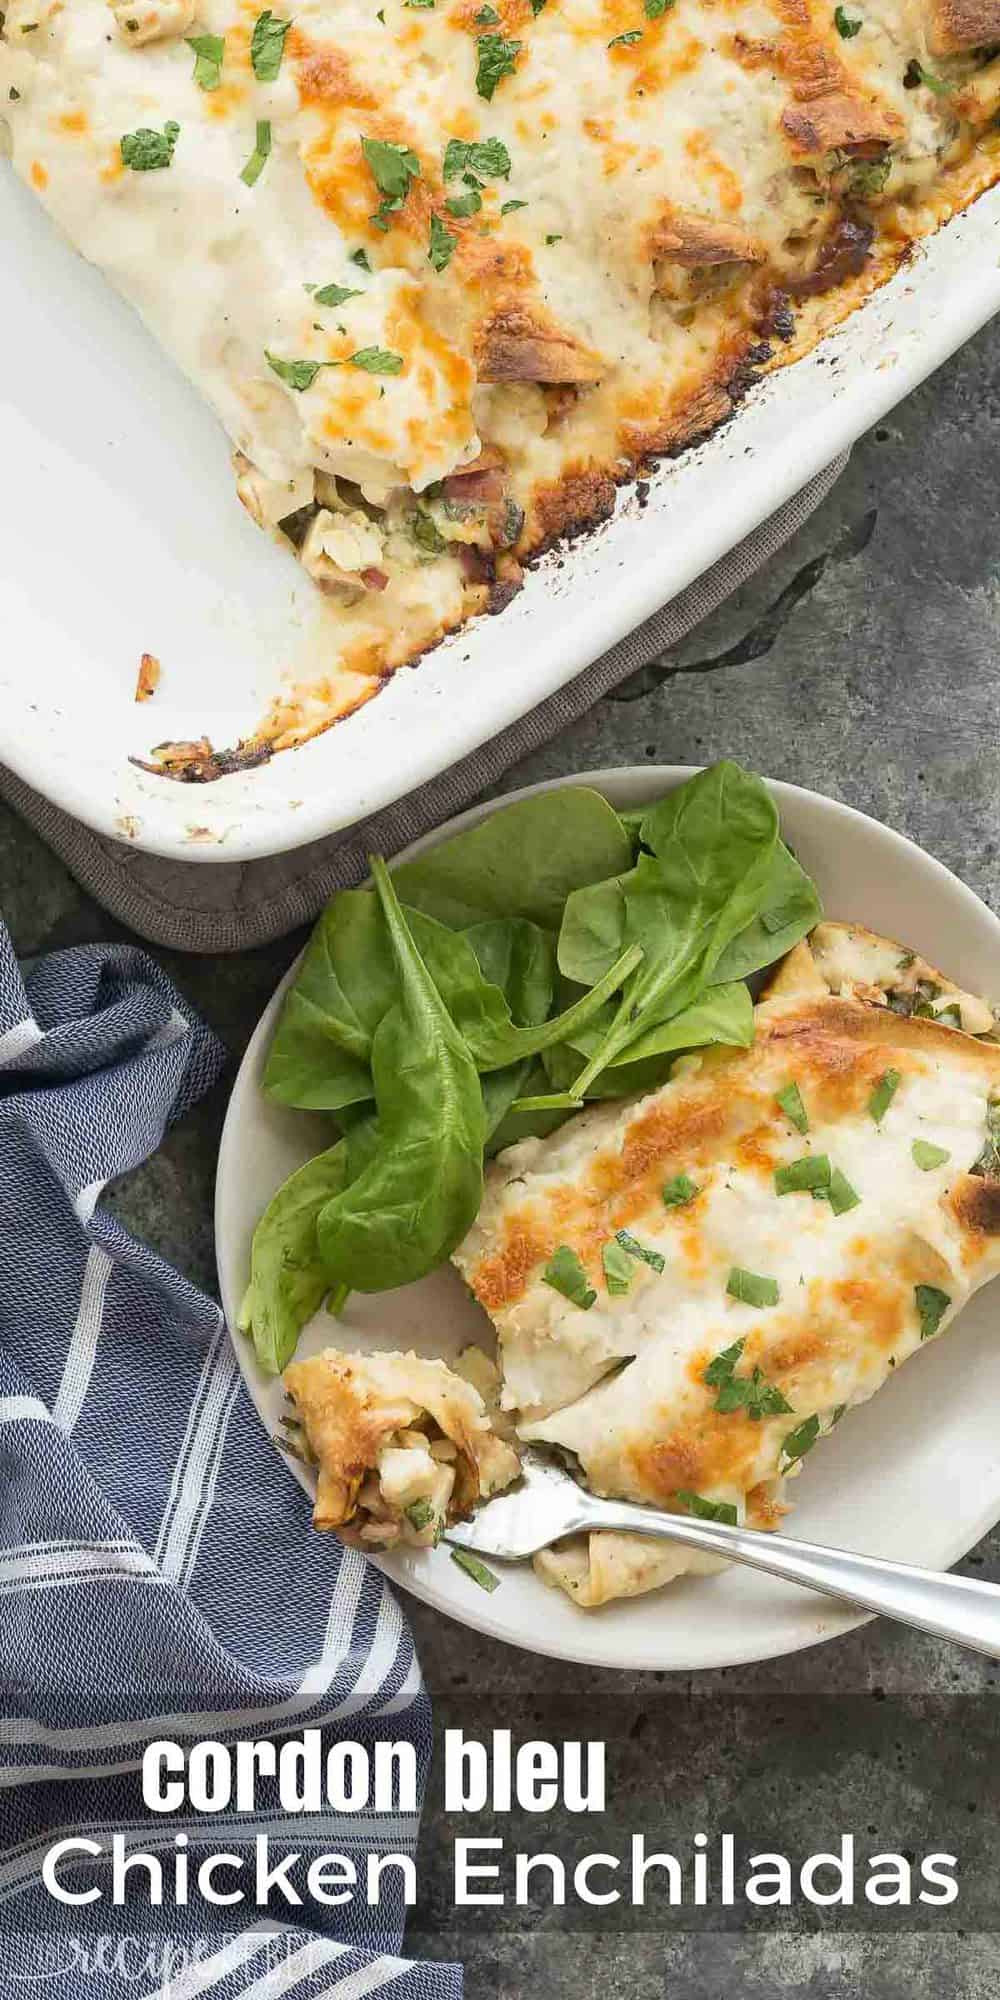 long image of chicken cordon bleu enchiladas on plate with fork taking bite and casserole dish on the side